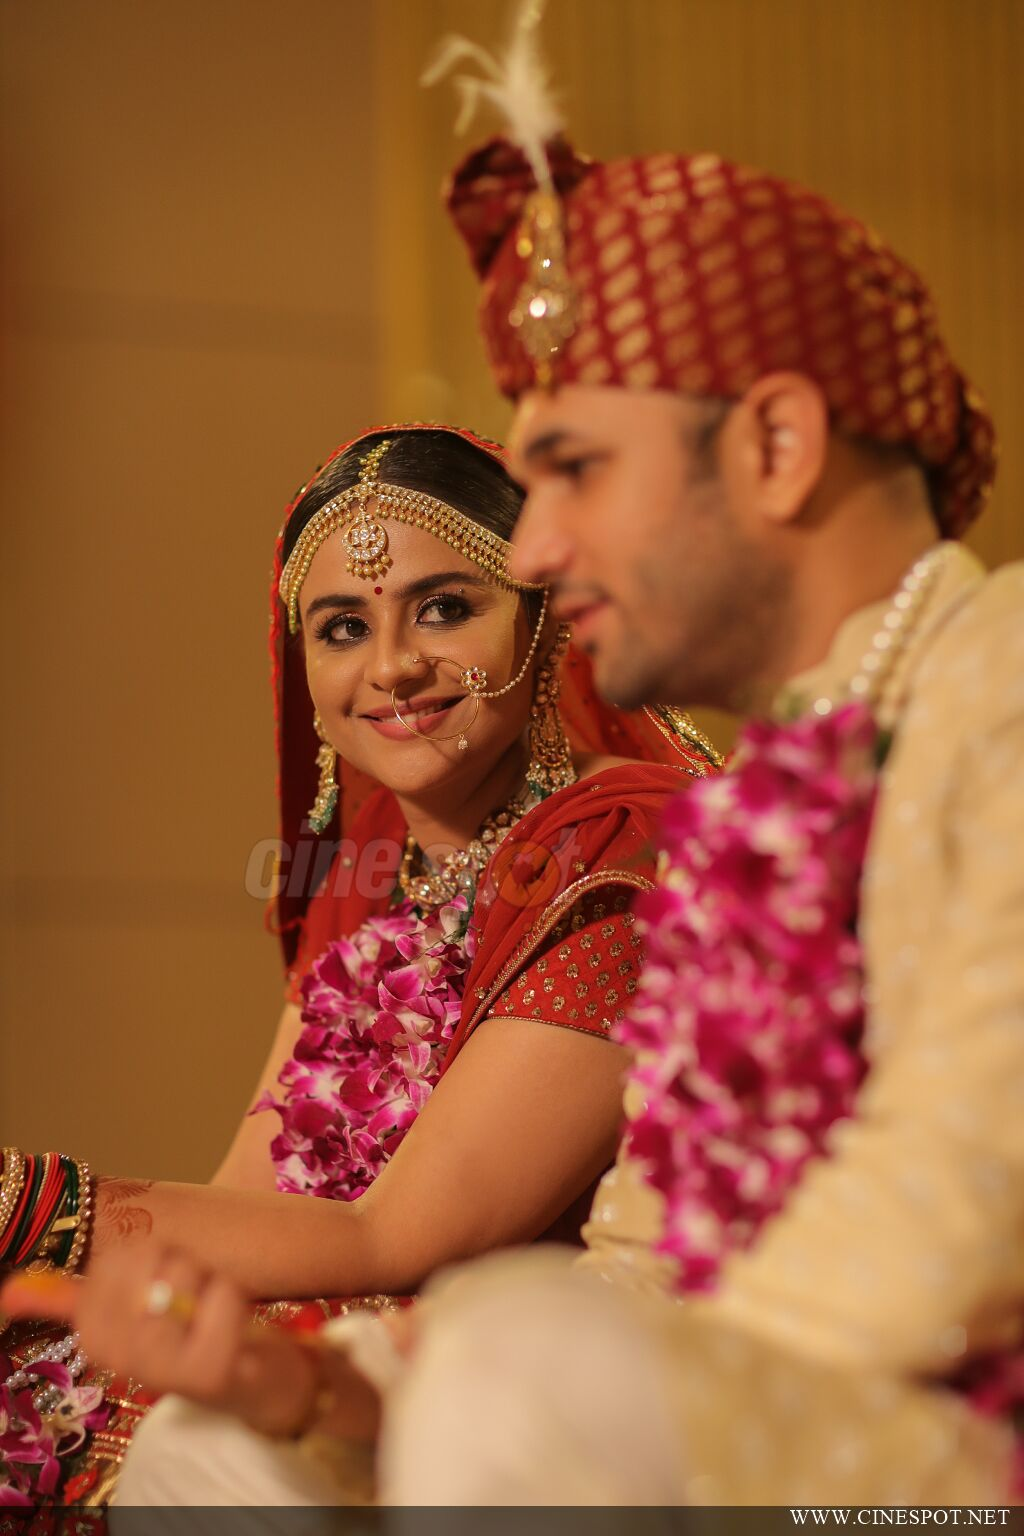 Prachi tehlan marriage photos (17)